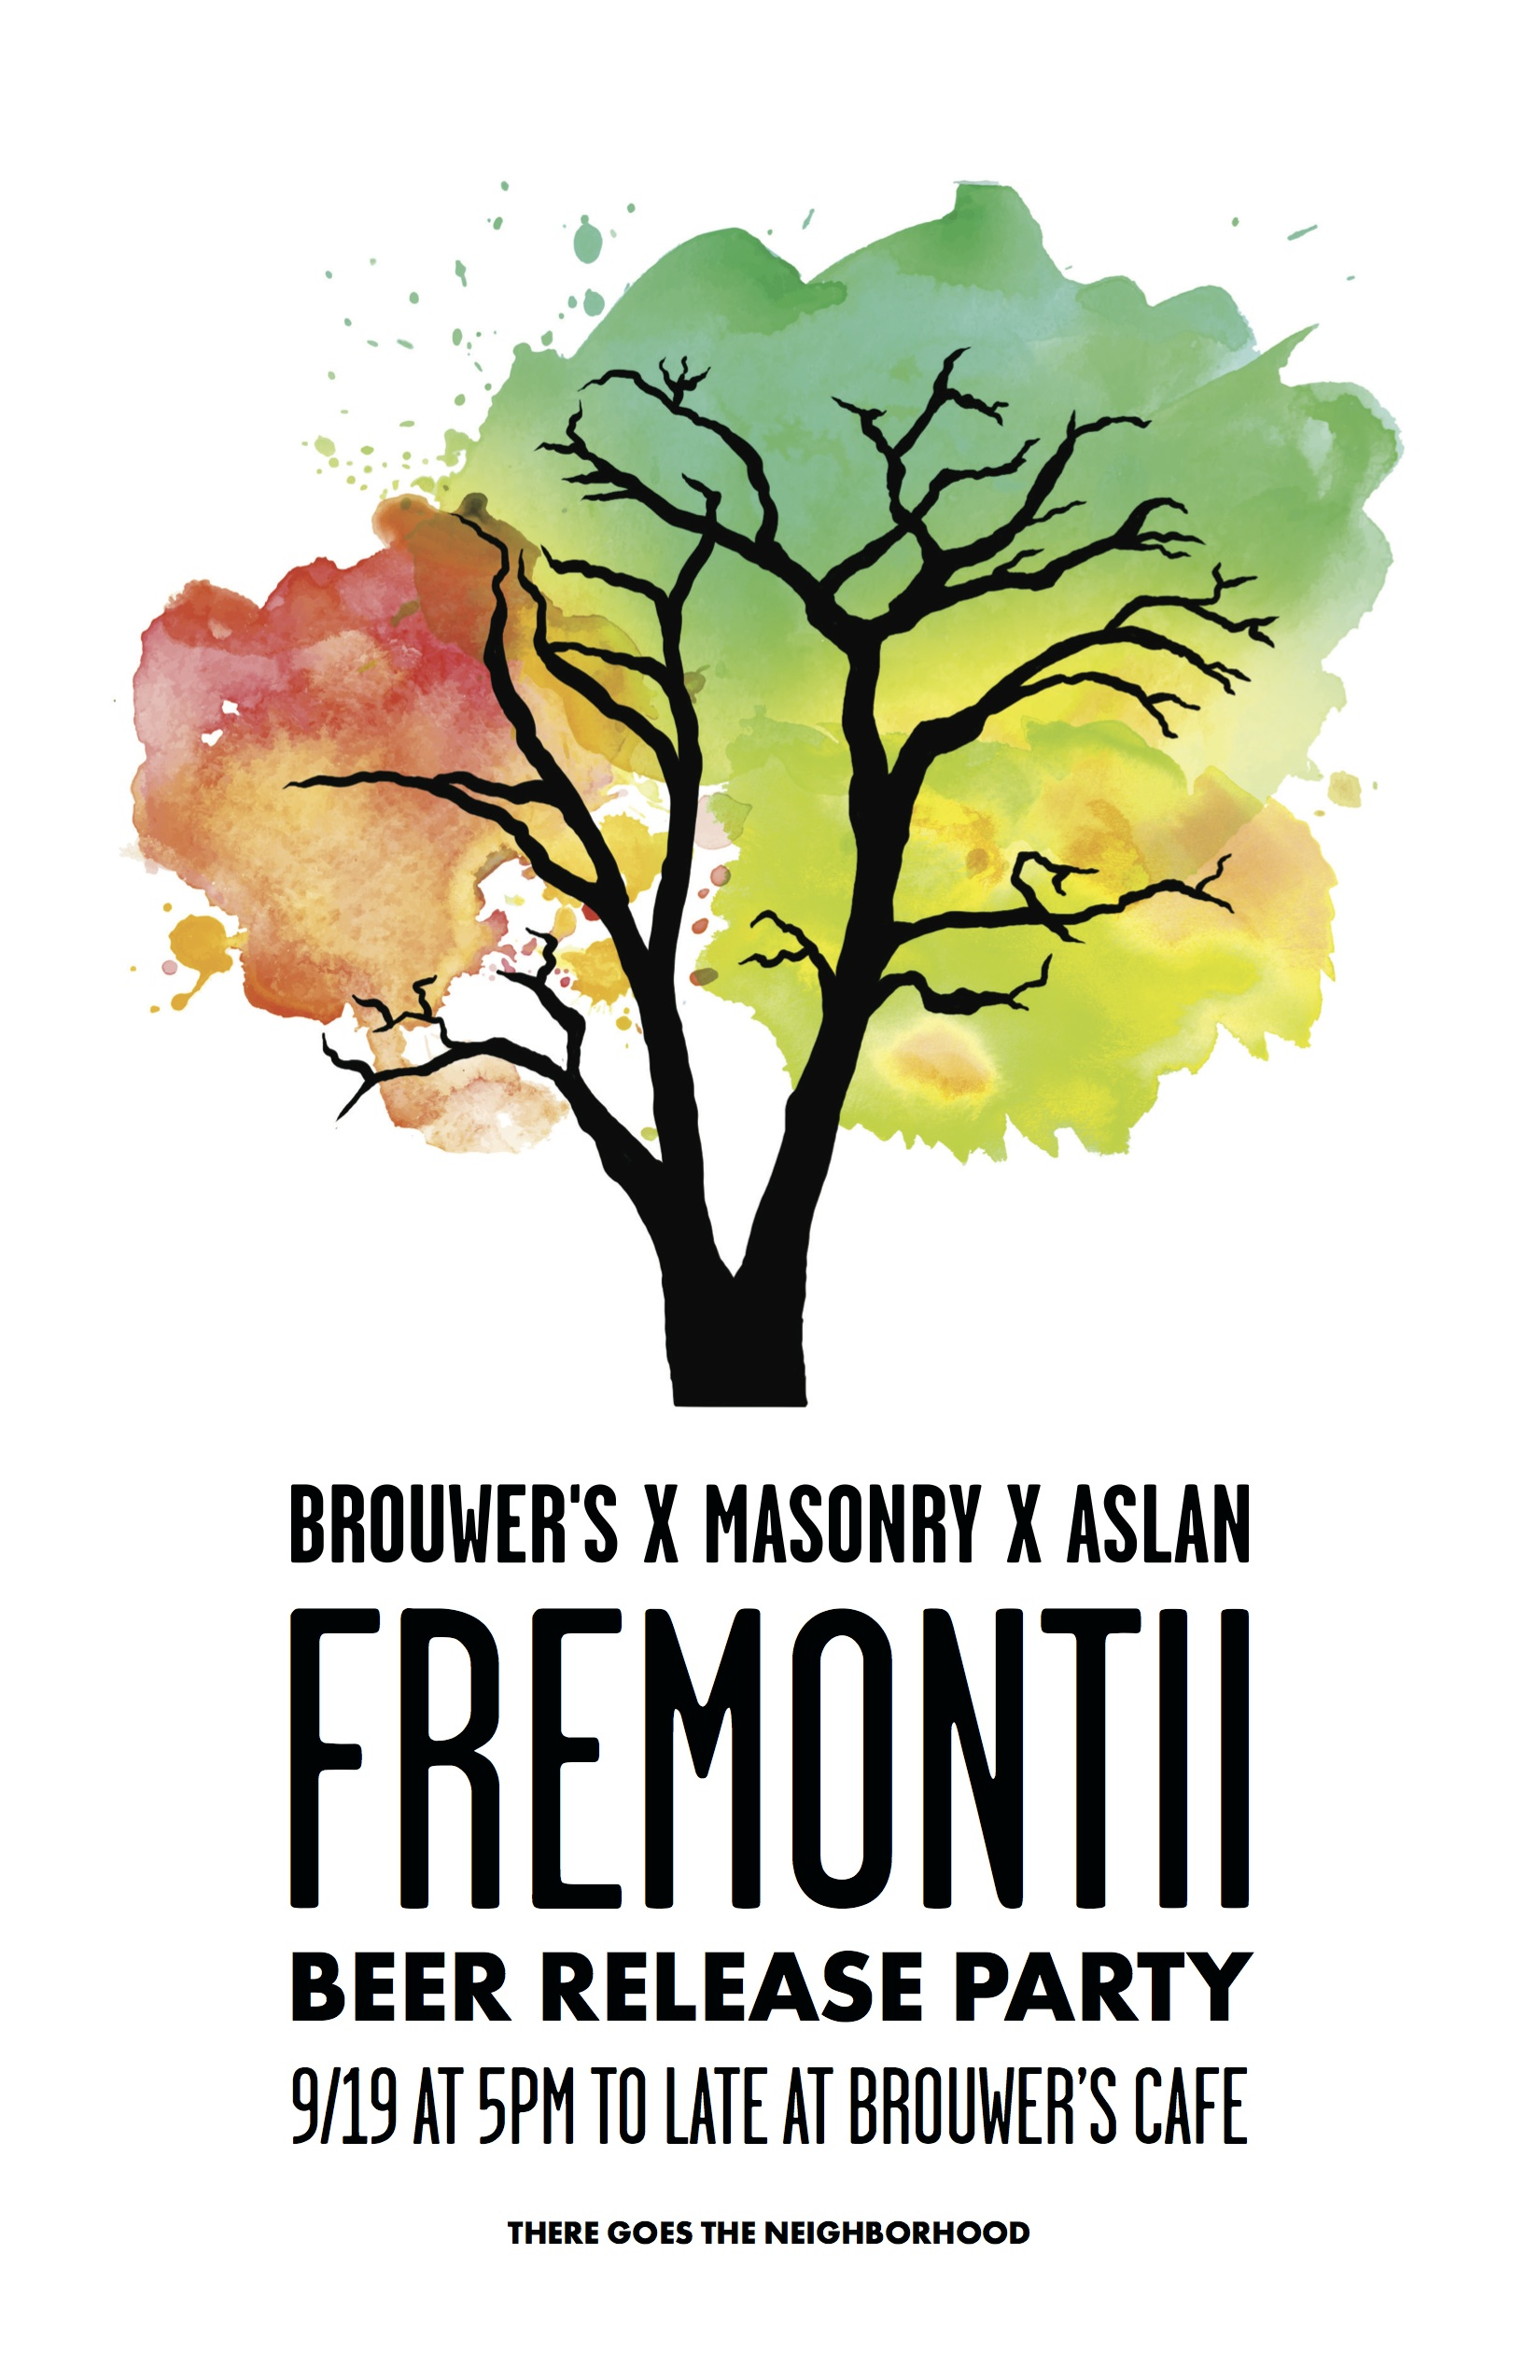 Thursday, September 19th @ 6pm Aslan/Masonry/Brouwer's Fremontii Beer Release